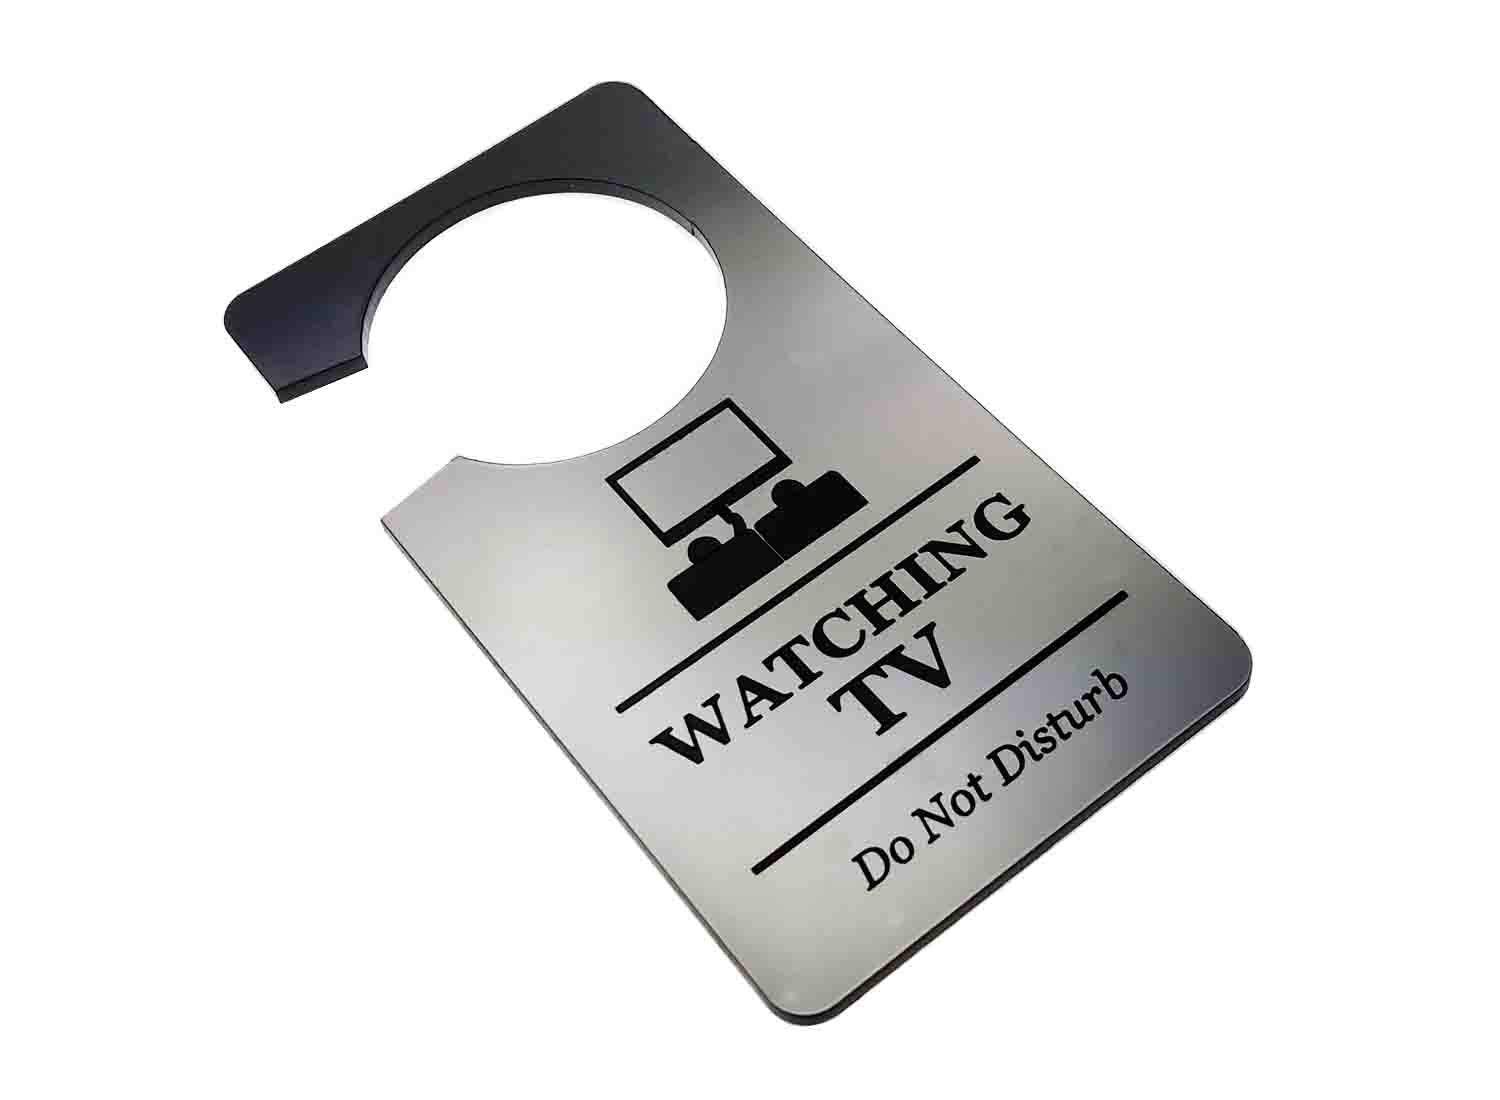 Watching TV Television, Do Not Disturb - Generic Silver, Room Door Sign, Ideal for use in the home or as a novelty gift